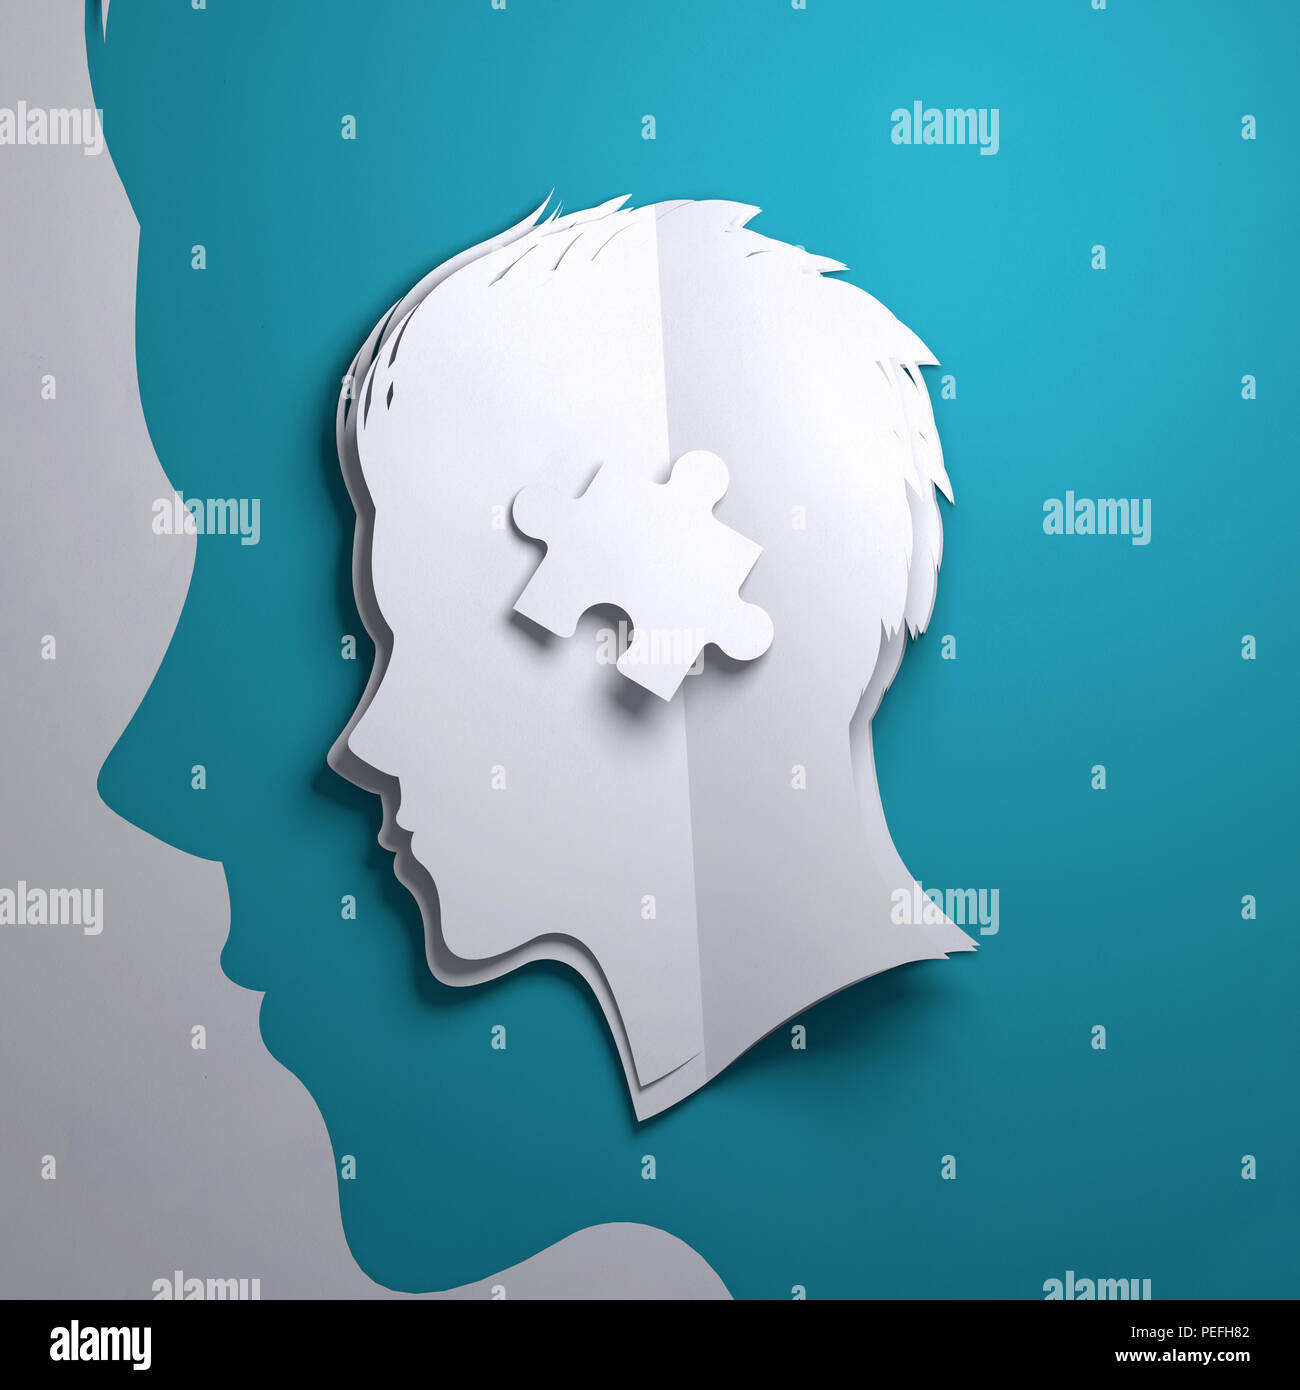 Folded Paper art origami. A silhouette of a persons head with a puzzle piece. Conceptual mindfulness 3D illustration. - Stock Image